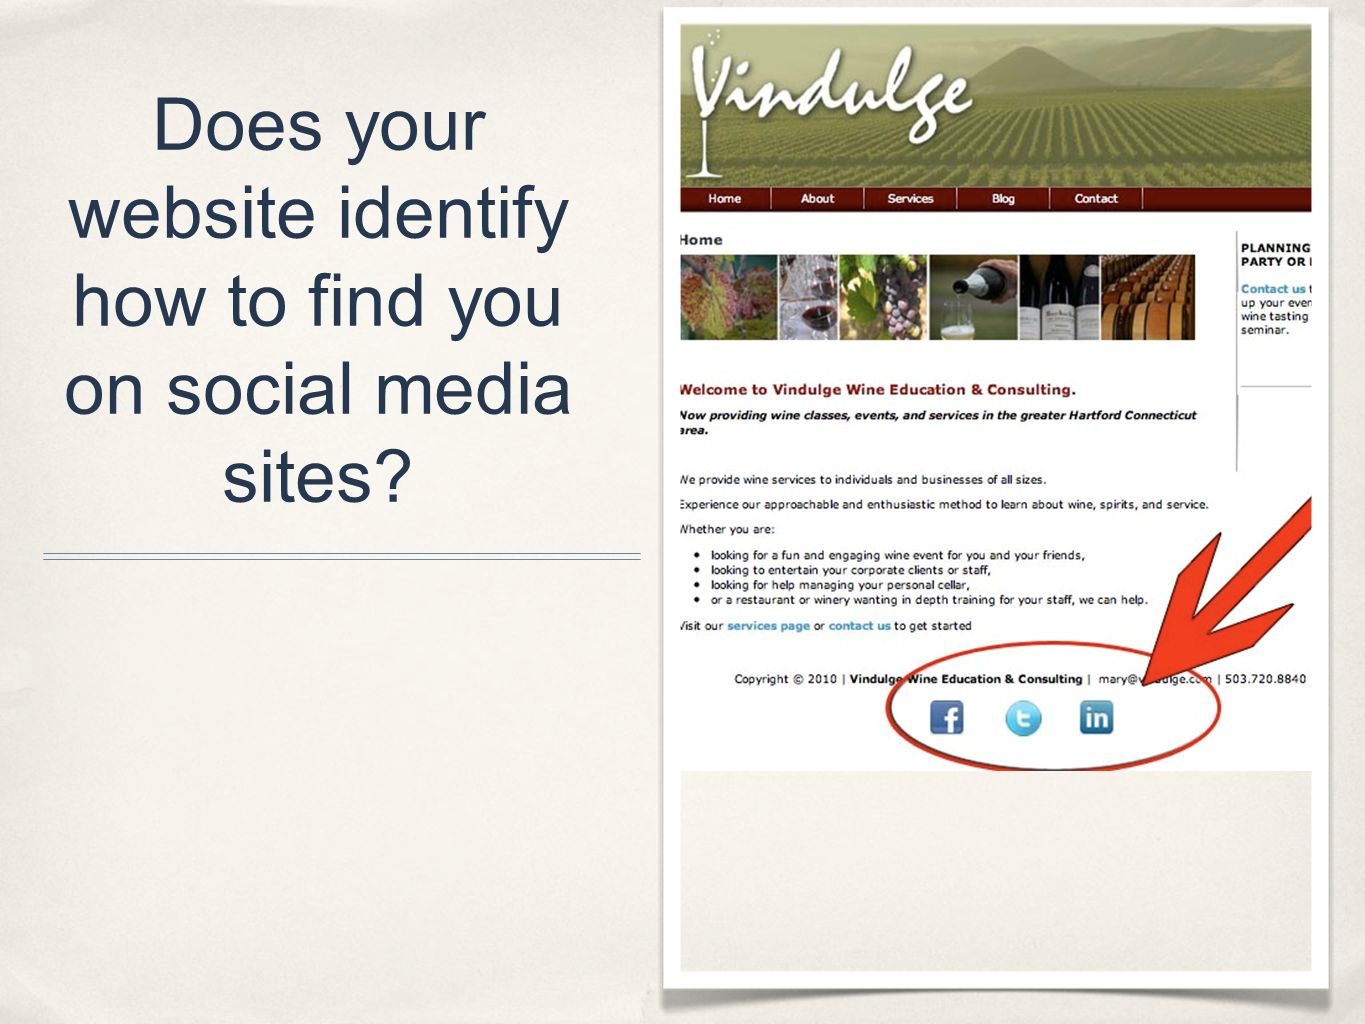 Does your website identify how to find you on social media sites